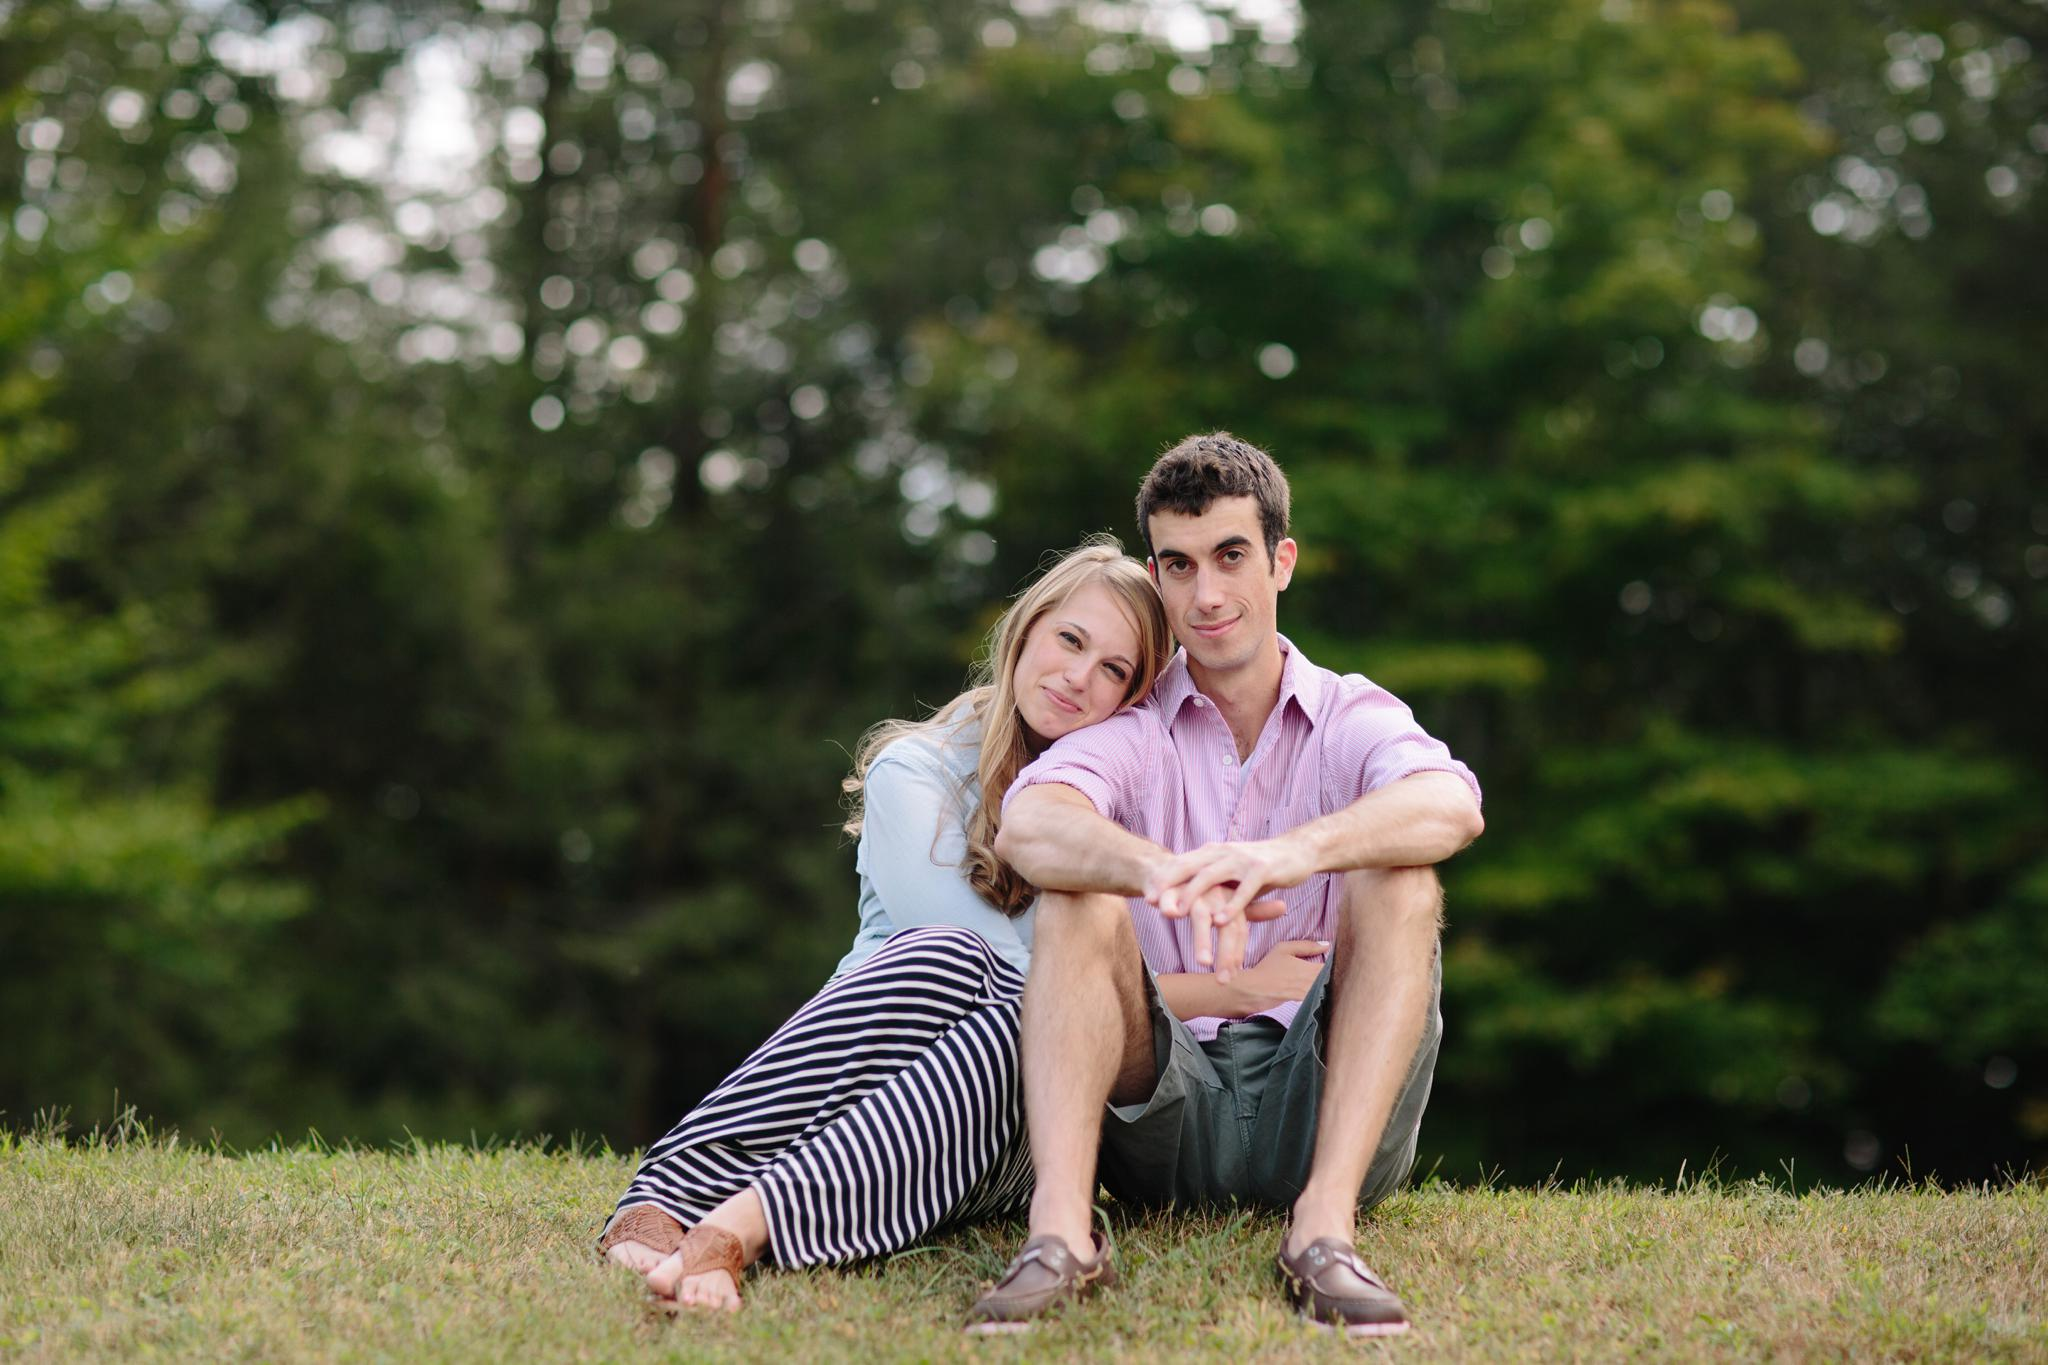 saddle_lake_engagement_session-24.jpg